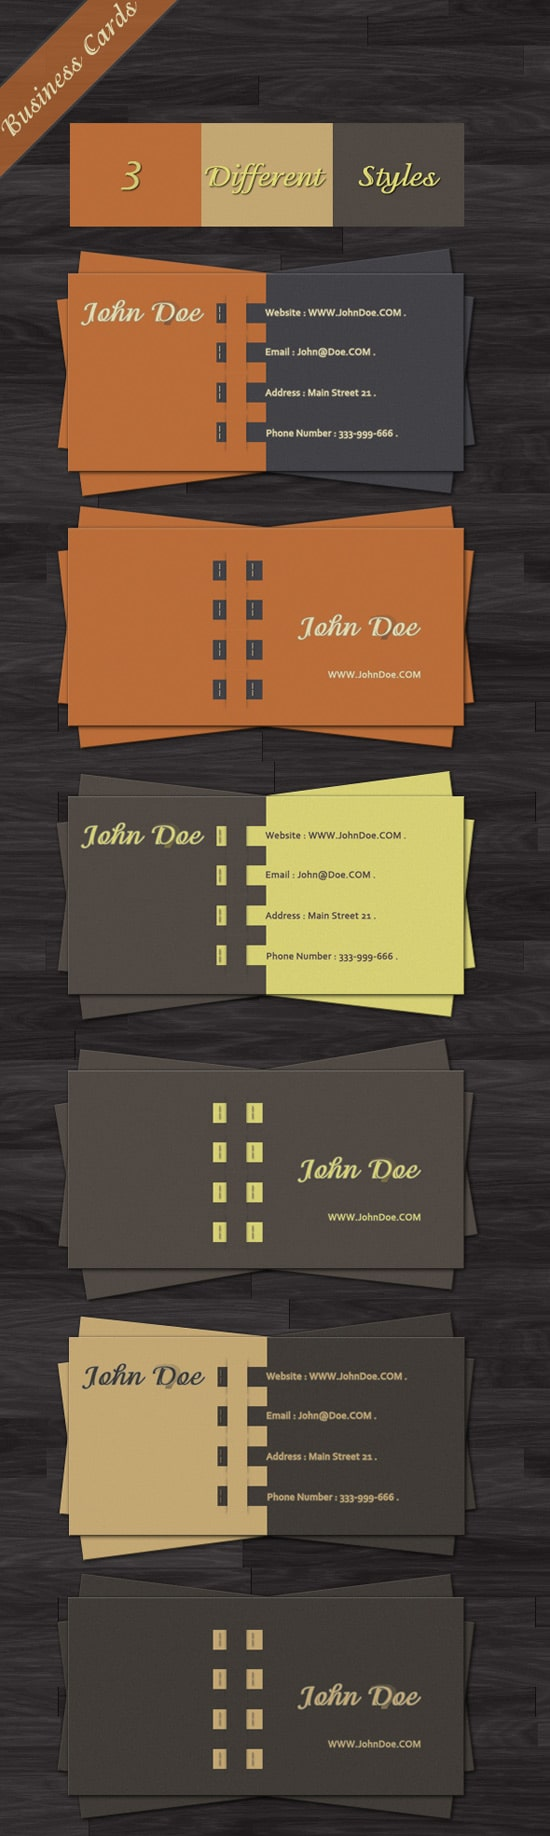 100 free business card templates designrfix business is business free psd vector business card fbccfo